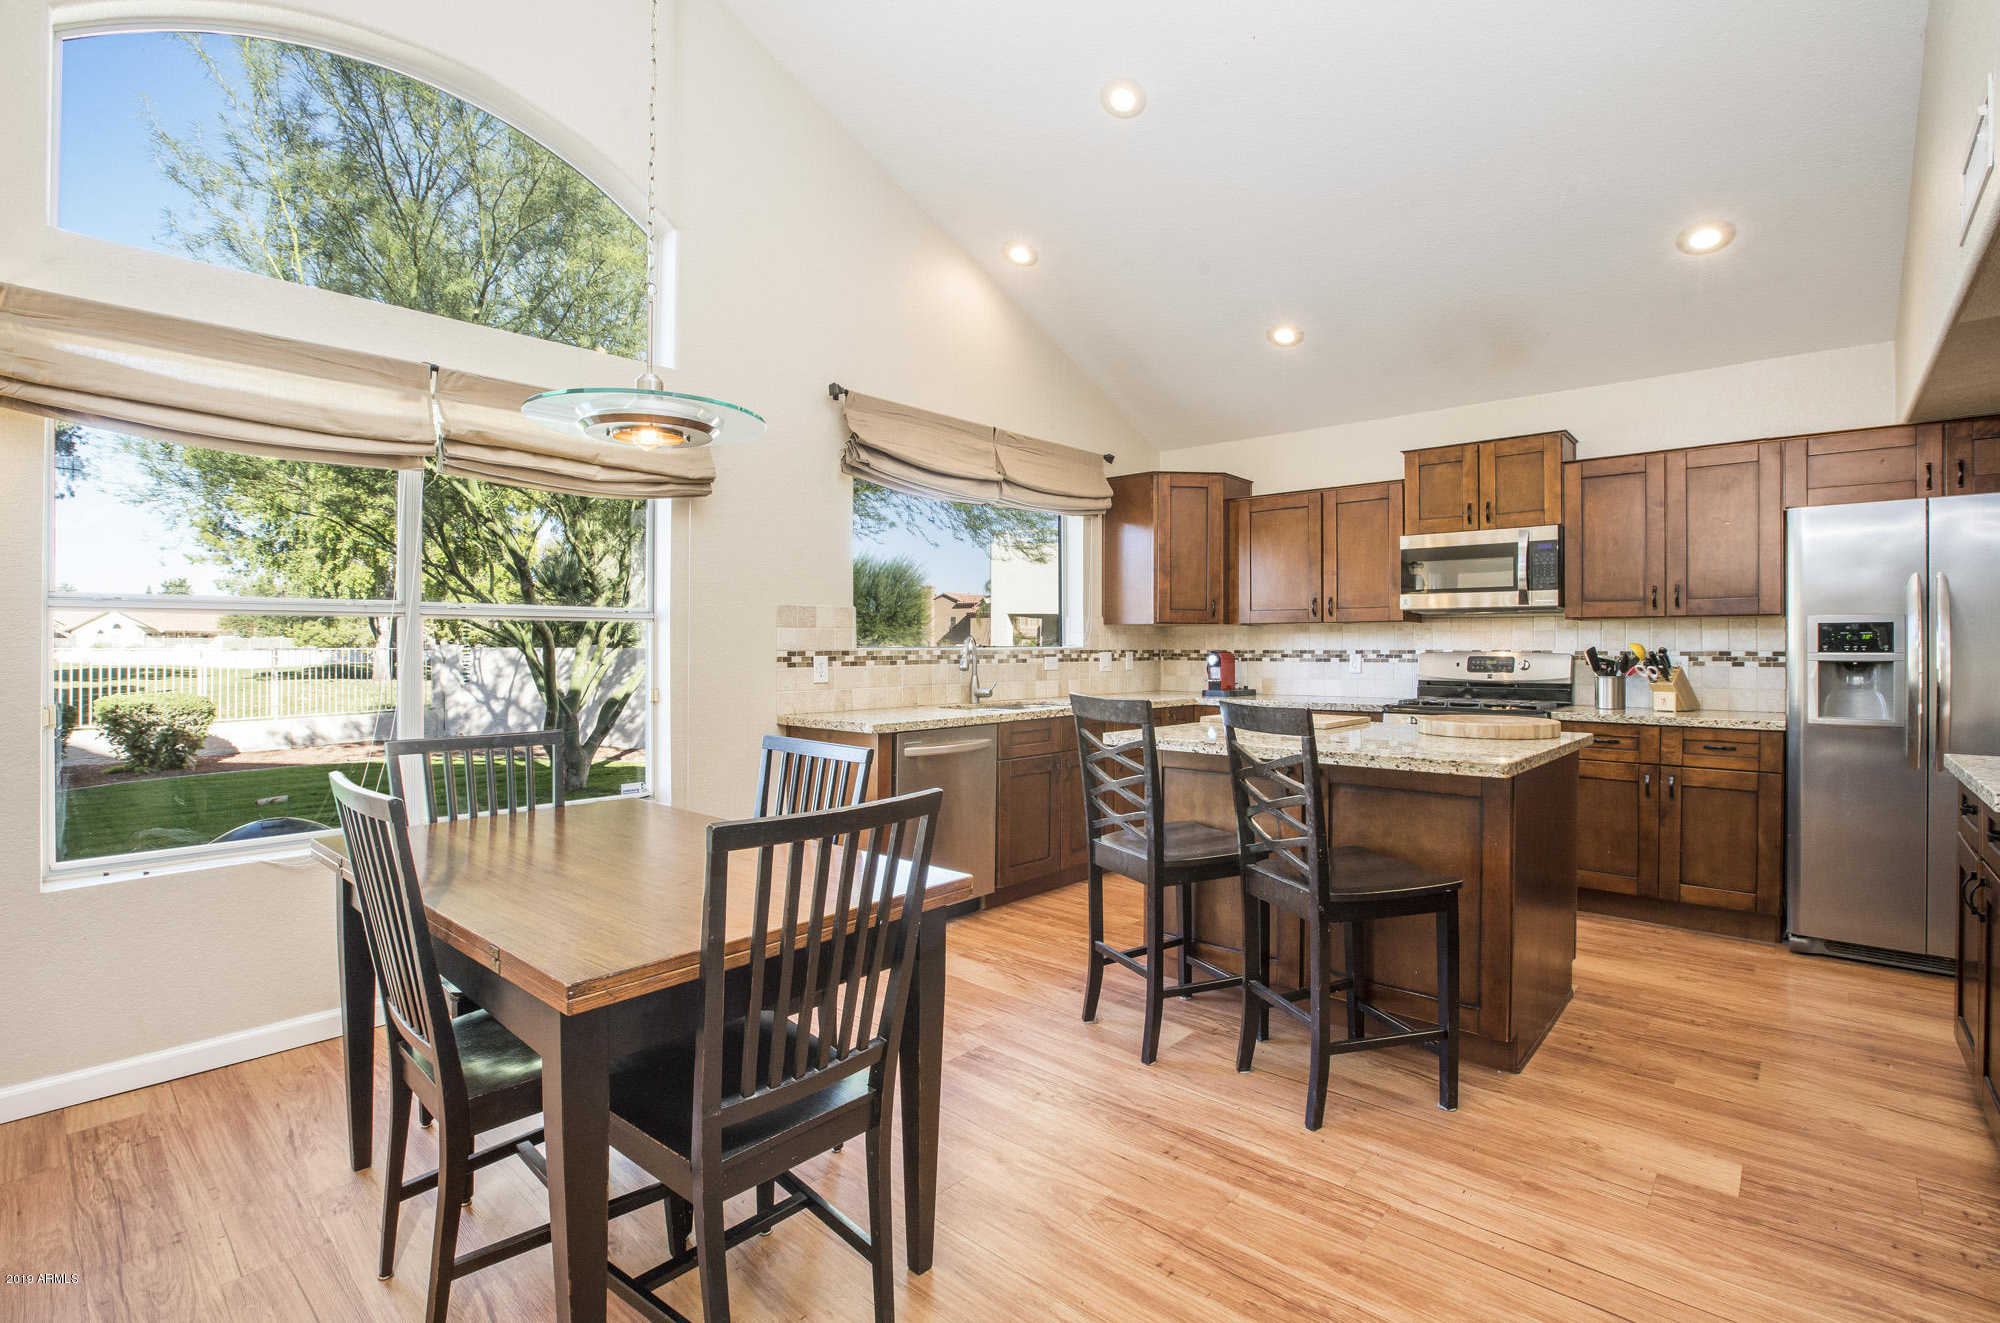 $410,000 - 5Br/3Ba - Home for Sale in Continental At Arrowhead Ranch, Glendale